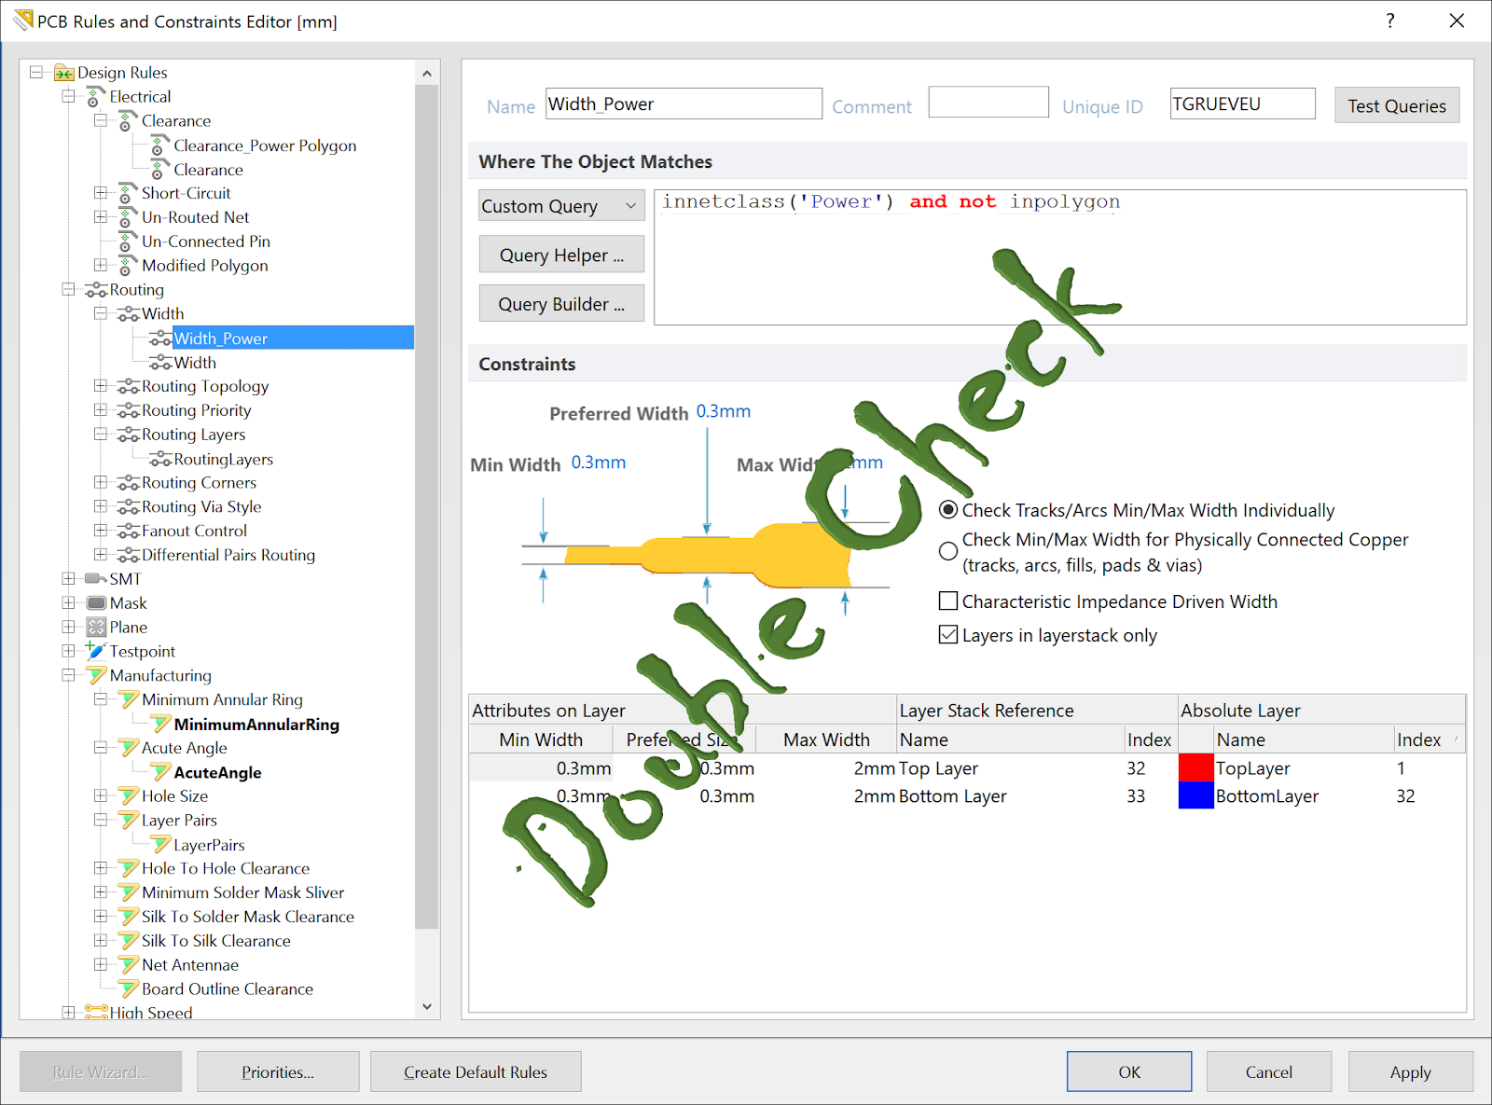 PCB design guidelines for double checking your work against PCB design rules and PCB layout guidelines